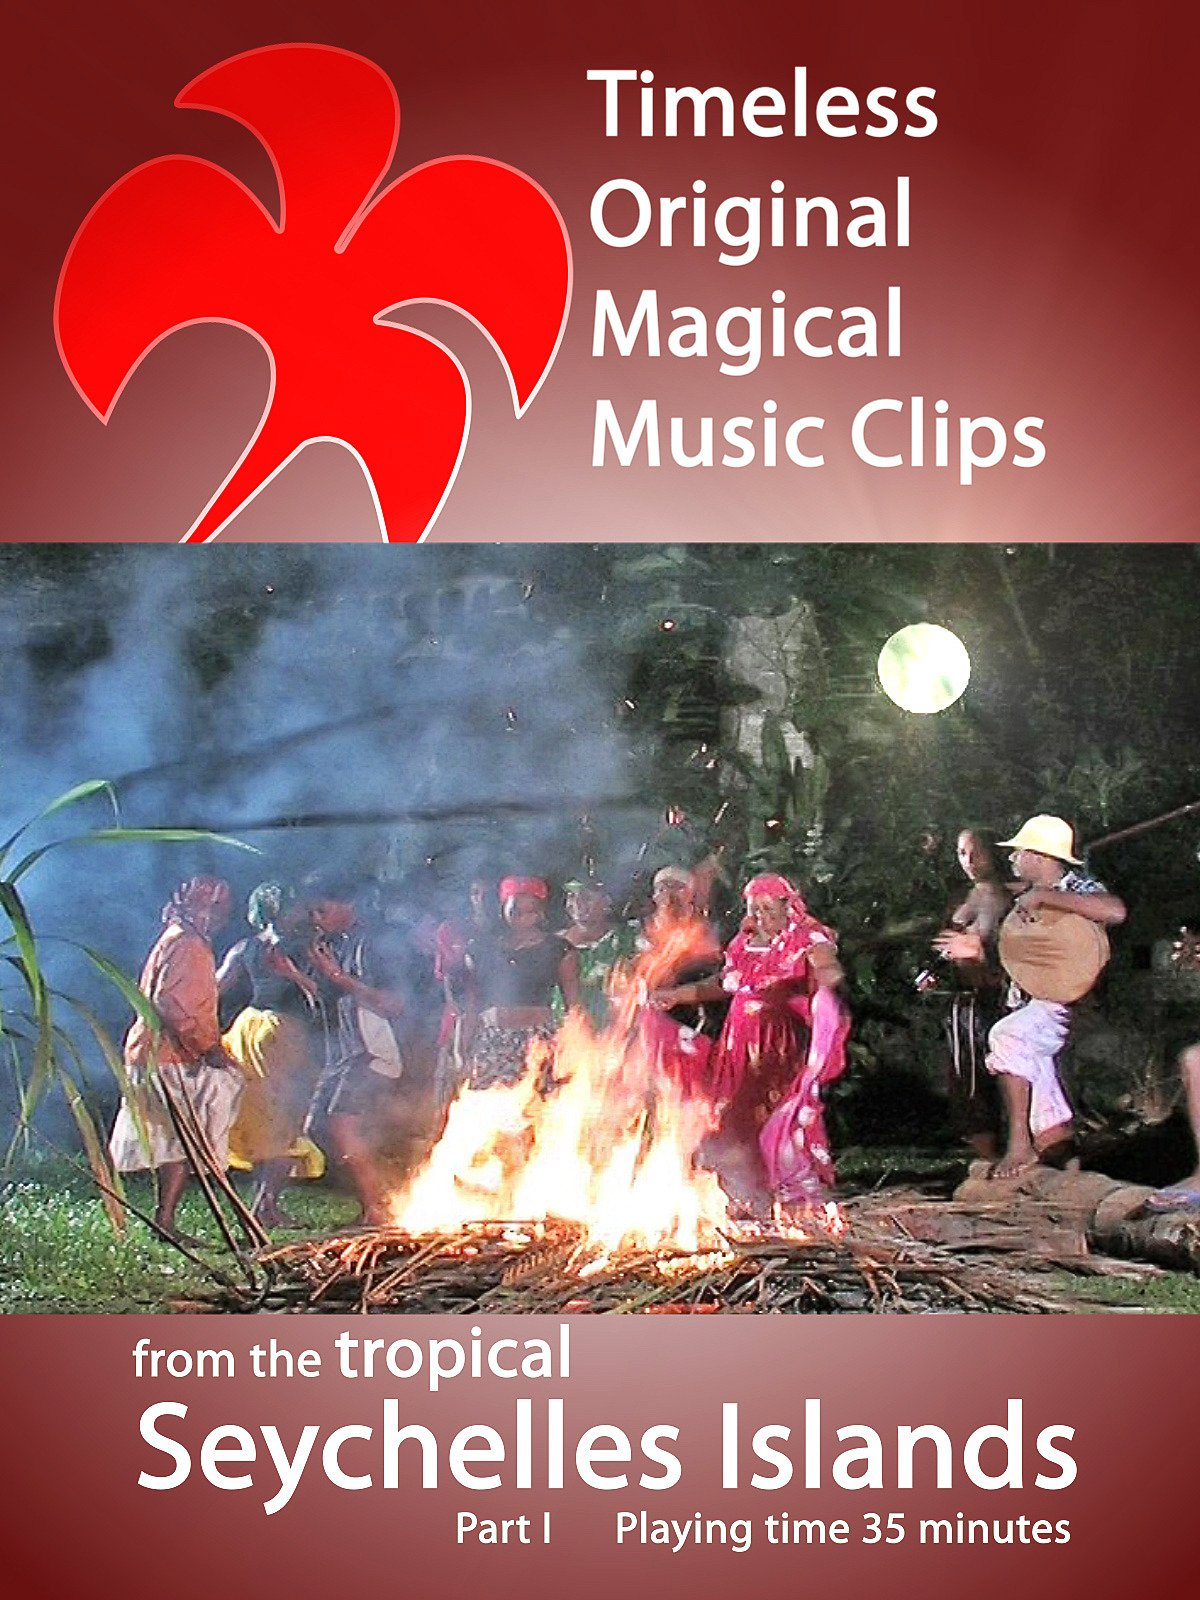 Timeless Original Magical Music Clips from the Tropical Seychelles Islands Part 1